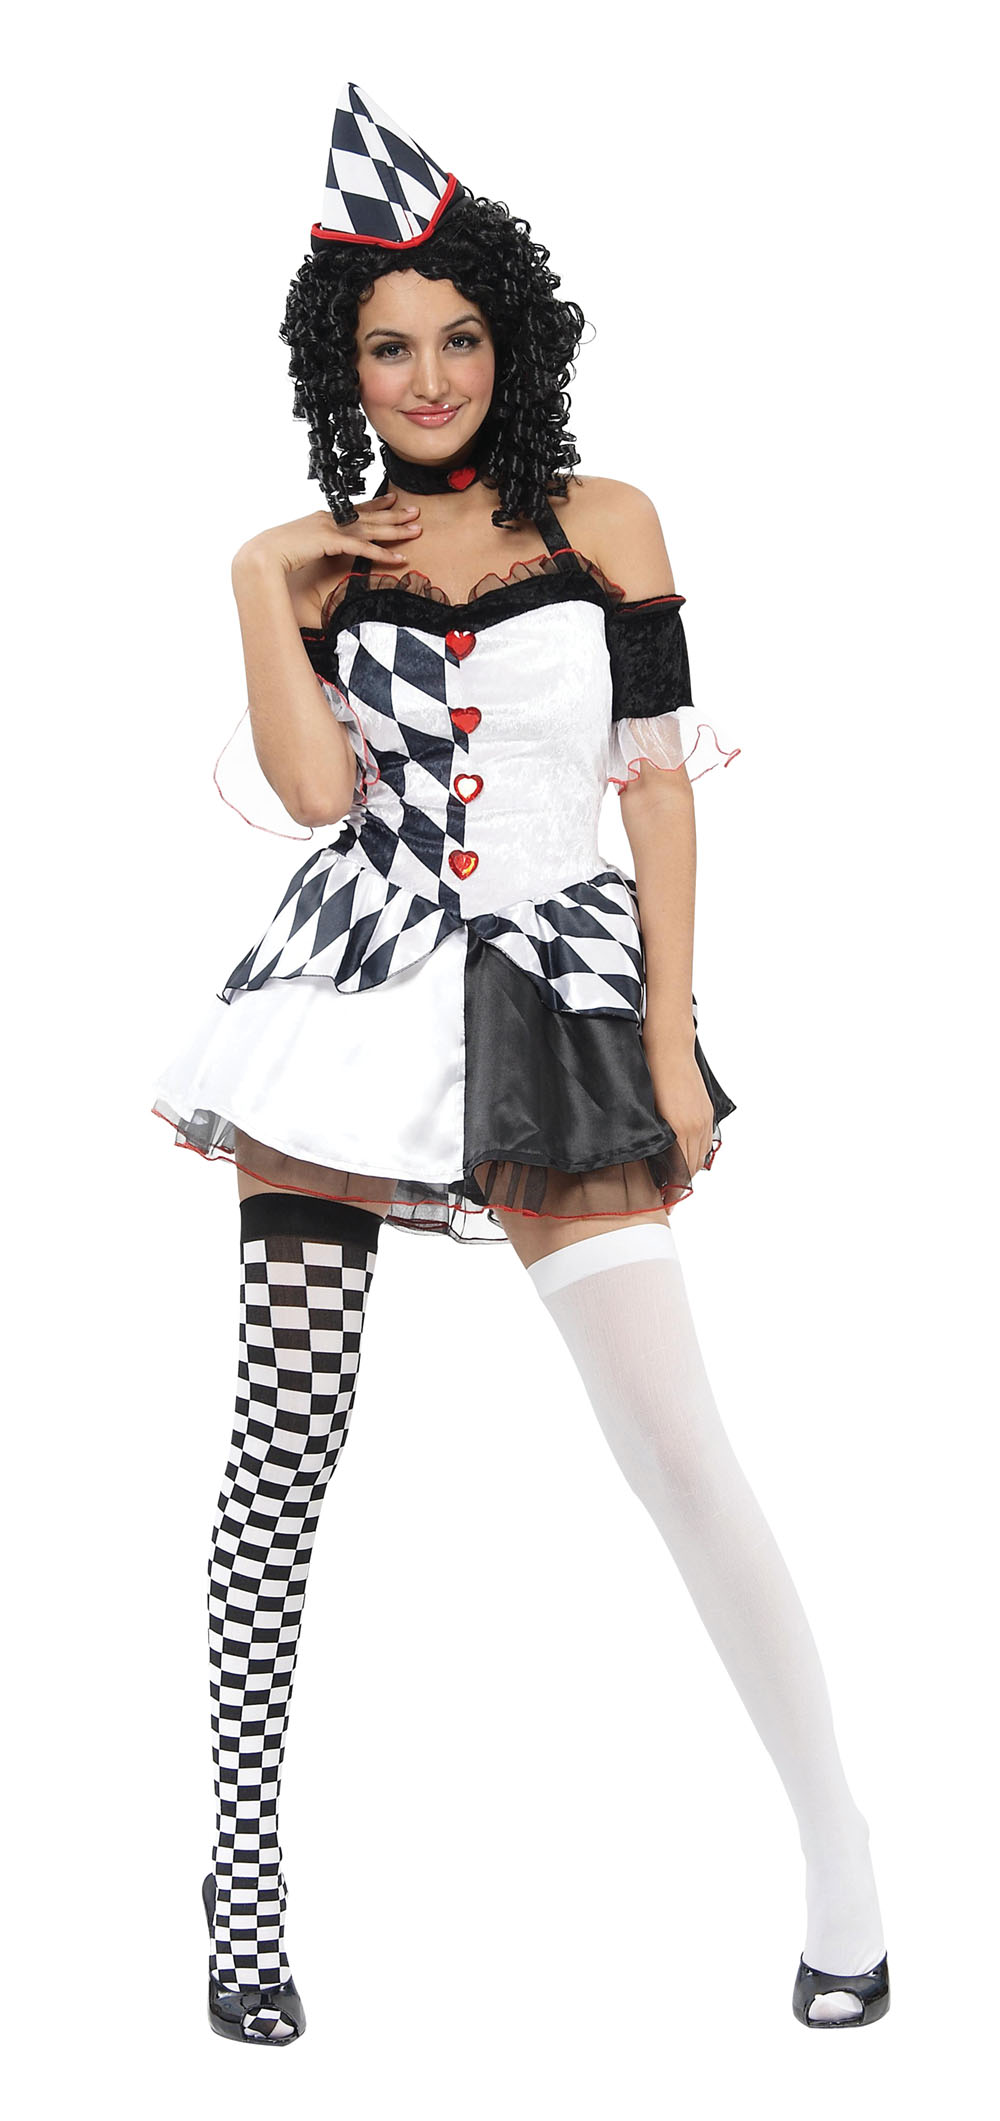 Ladies Sexy Harley Quinn Fancy Dess Costume Clown Halloween Outfit UK 10-14